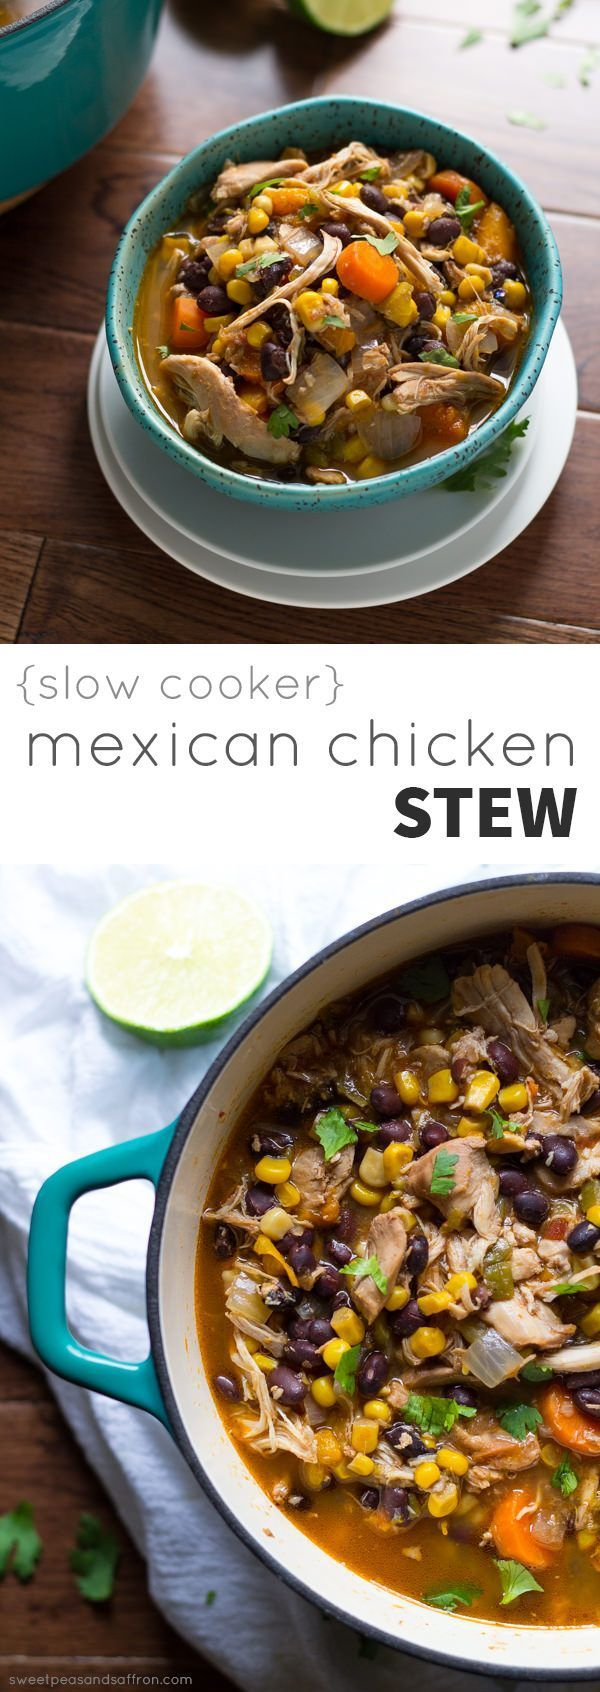 Slow Cooker Mexican Chicken Stew, inspired by tortilla soup! @Denise | Sweet Peas & Saffron